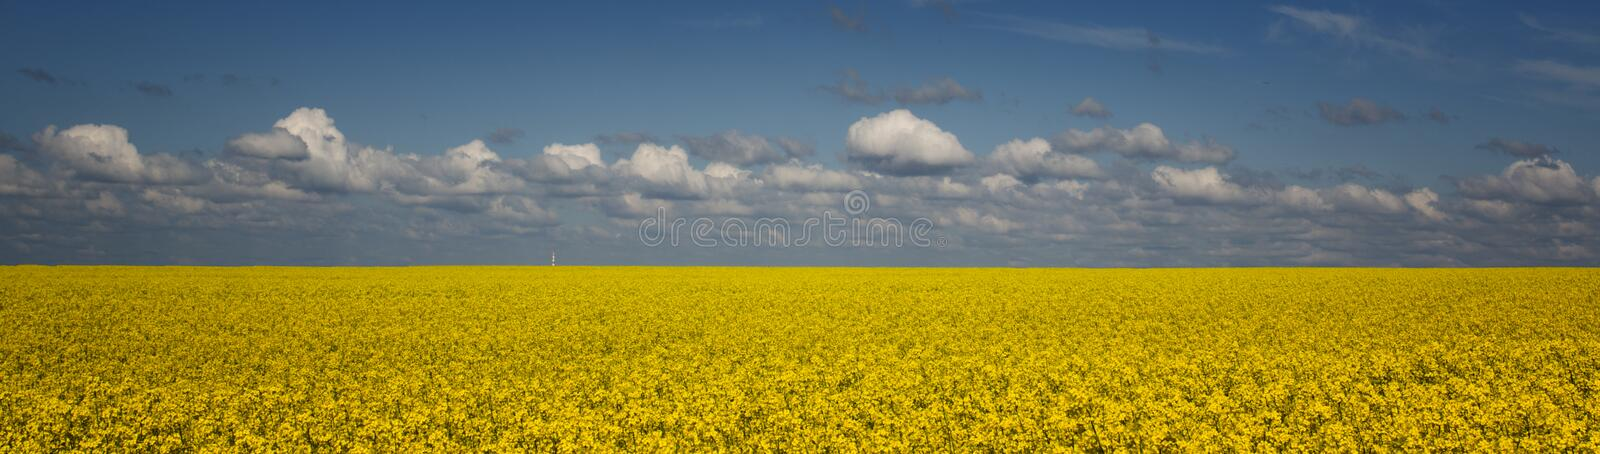 Bright yellow rapeseed field against a blue sky with clouds royalty free stock photos